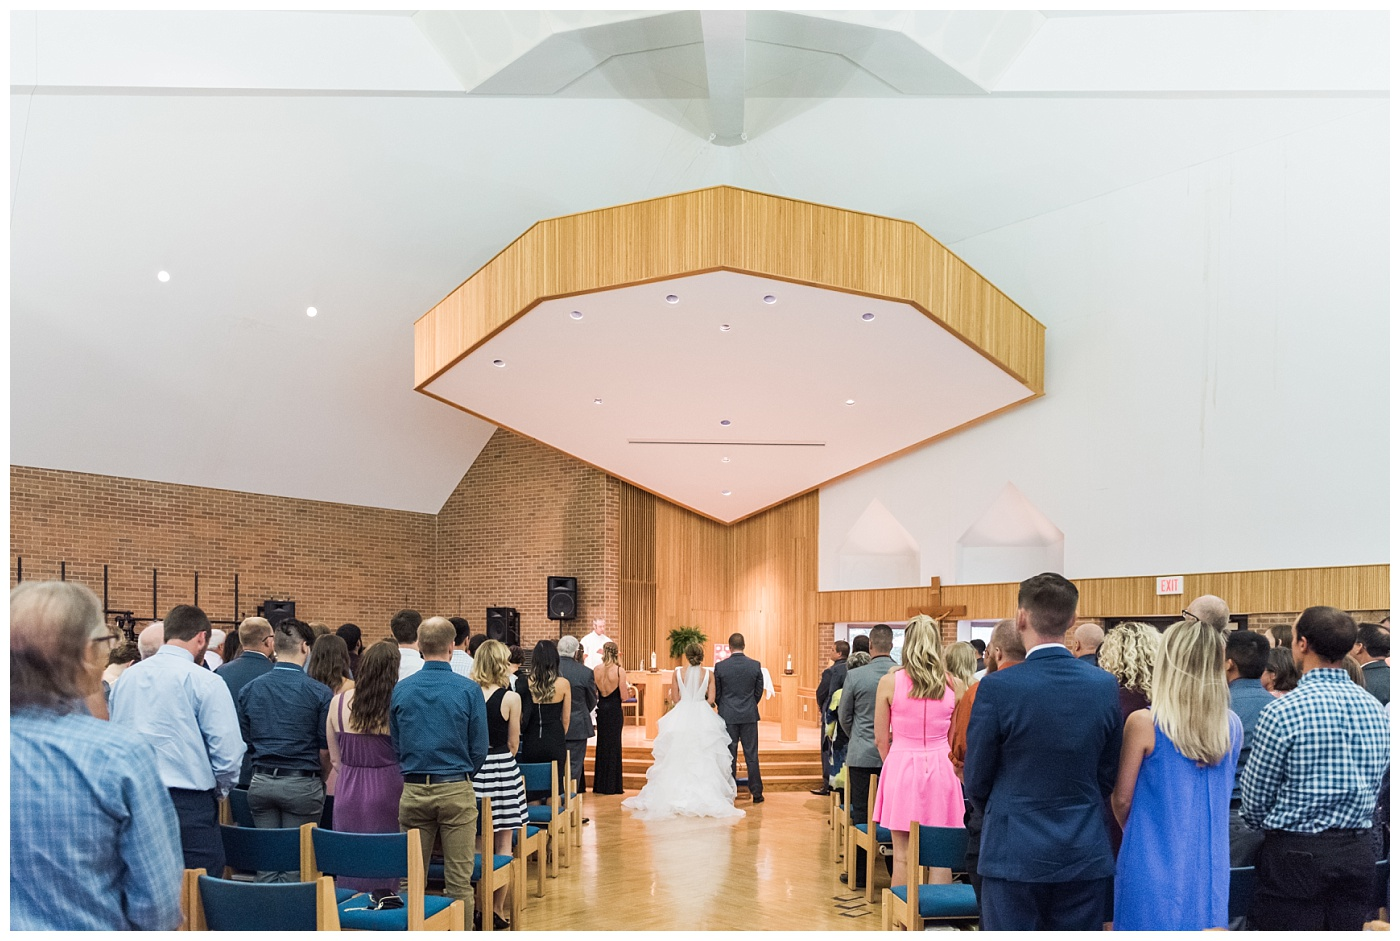 Stephanie Marie Photography Newman Catholic Center Ceremony Bella Sala Reception Tiffin Iowa City Wedding Photographer Chelsey Justin Meyers_0023-1.jpg